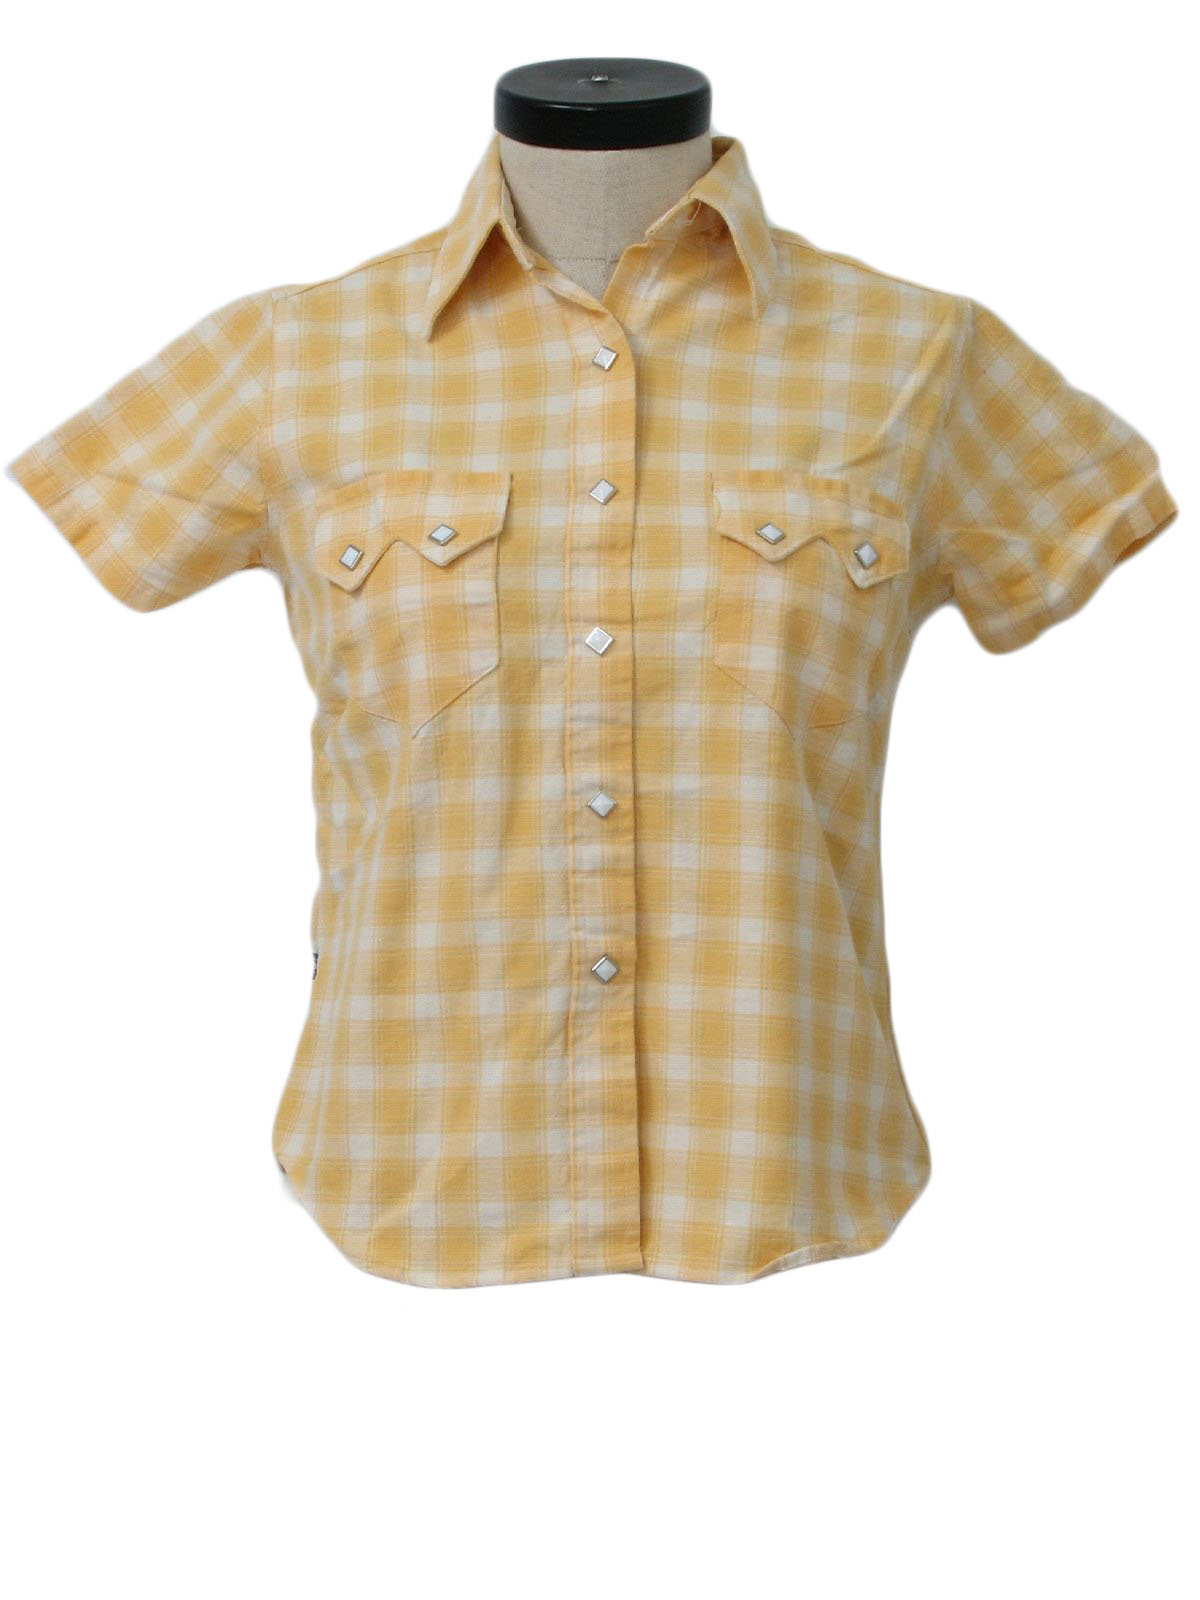 Womens Yellow Plaid Shirt